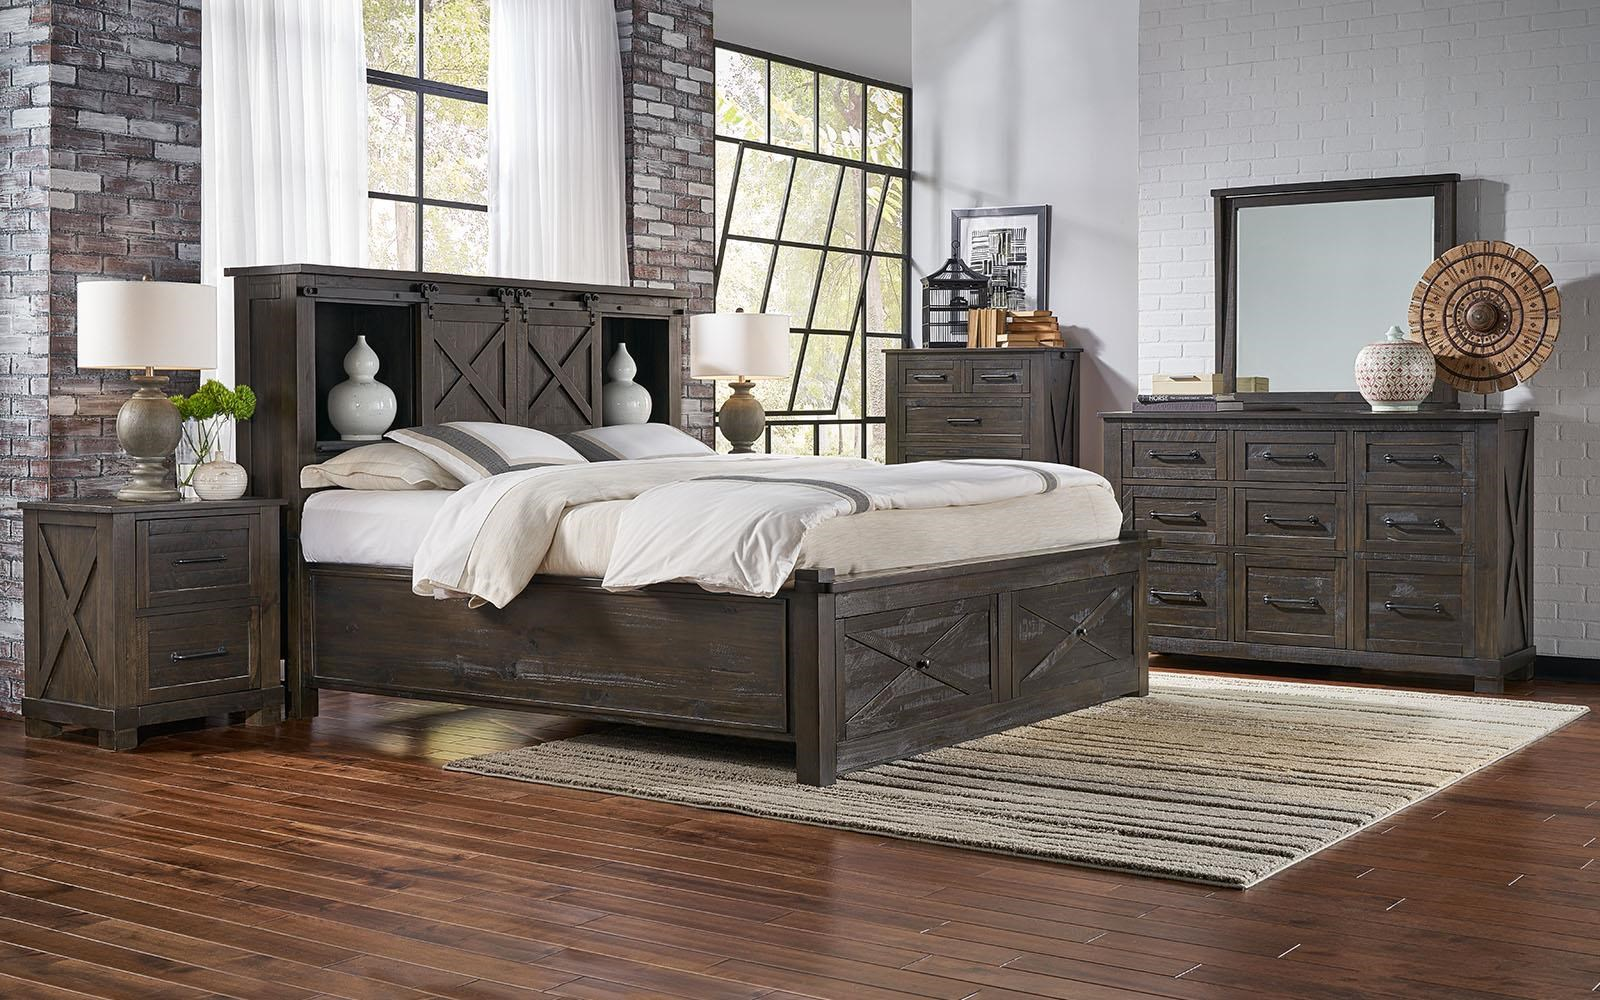 Sun Valley 4-Piece King Bedroom Set at Ruby Gordon Home